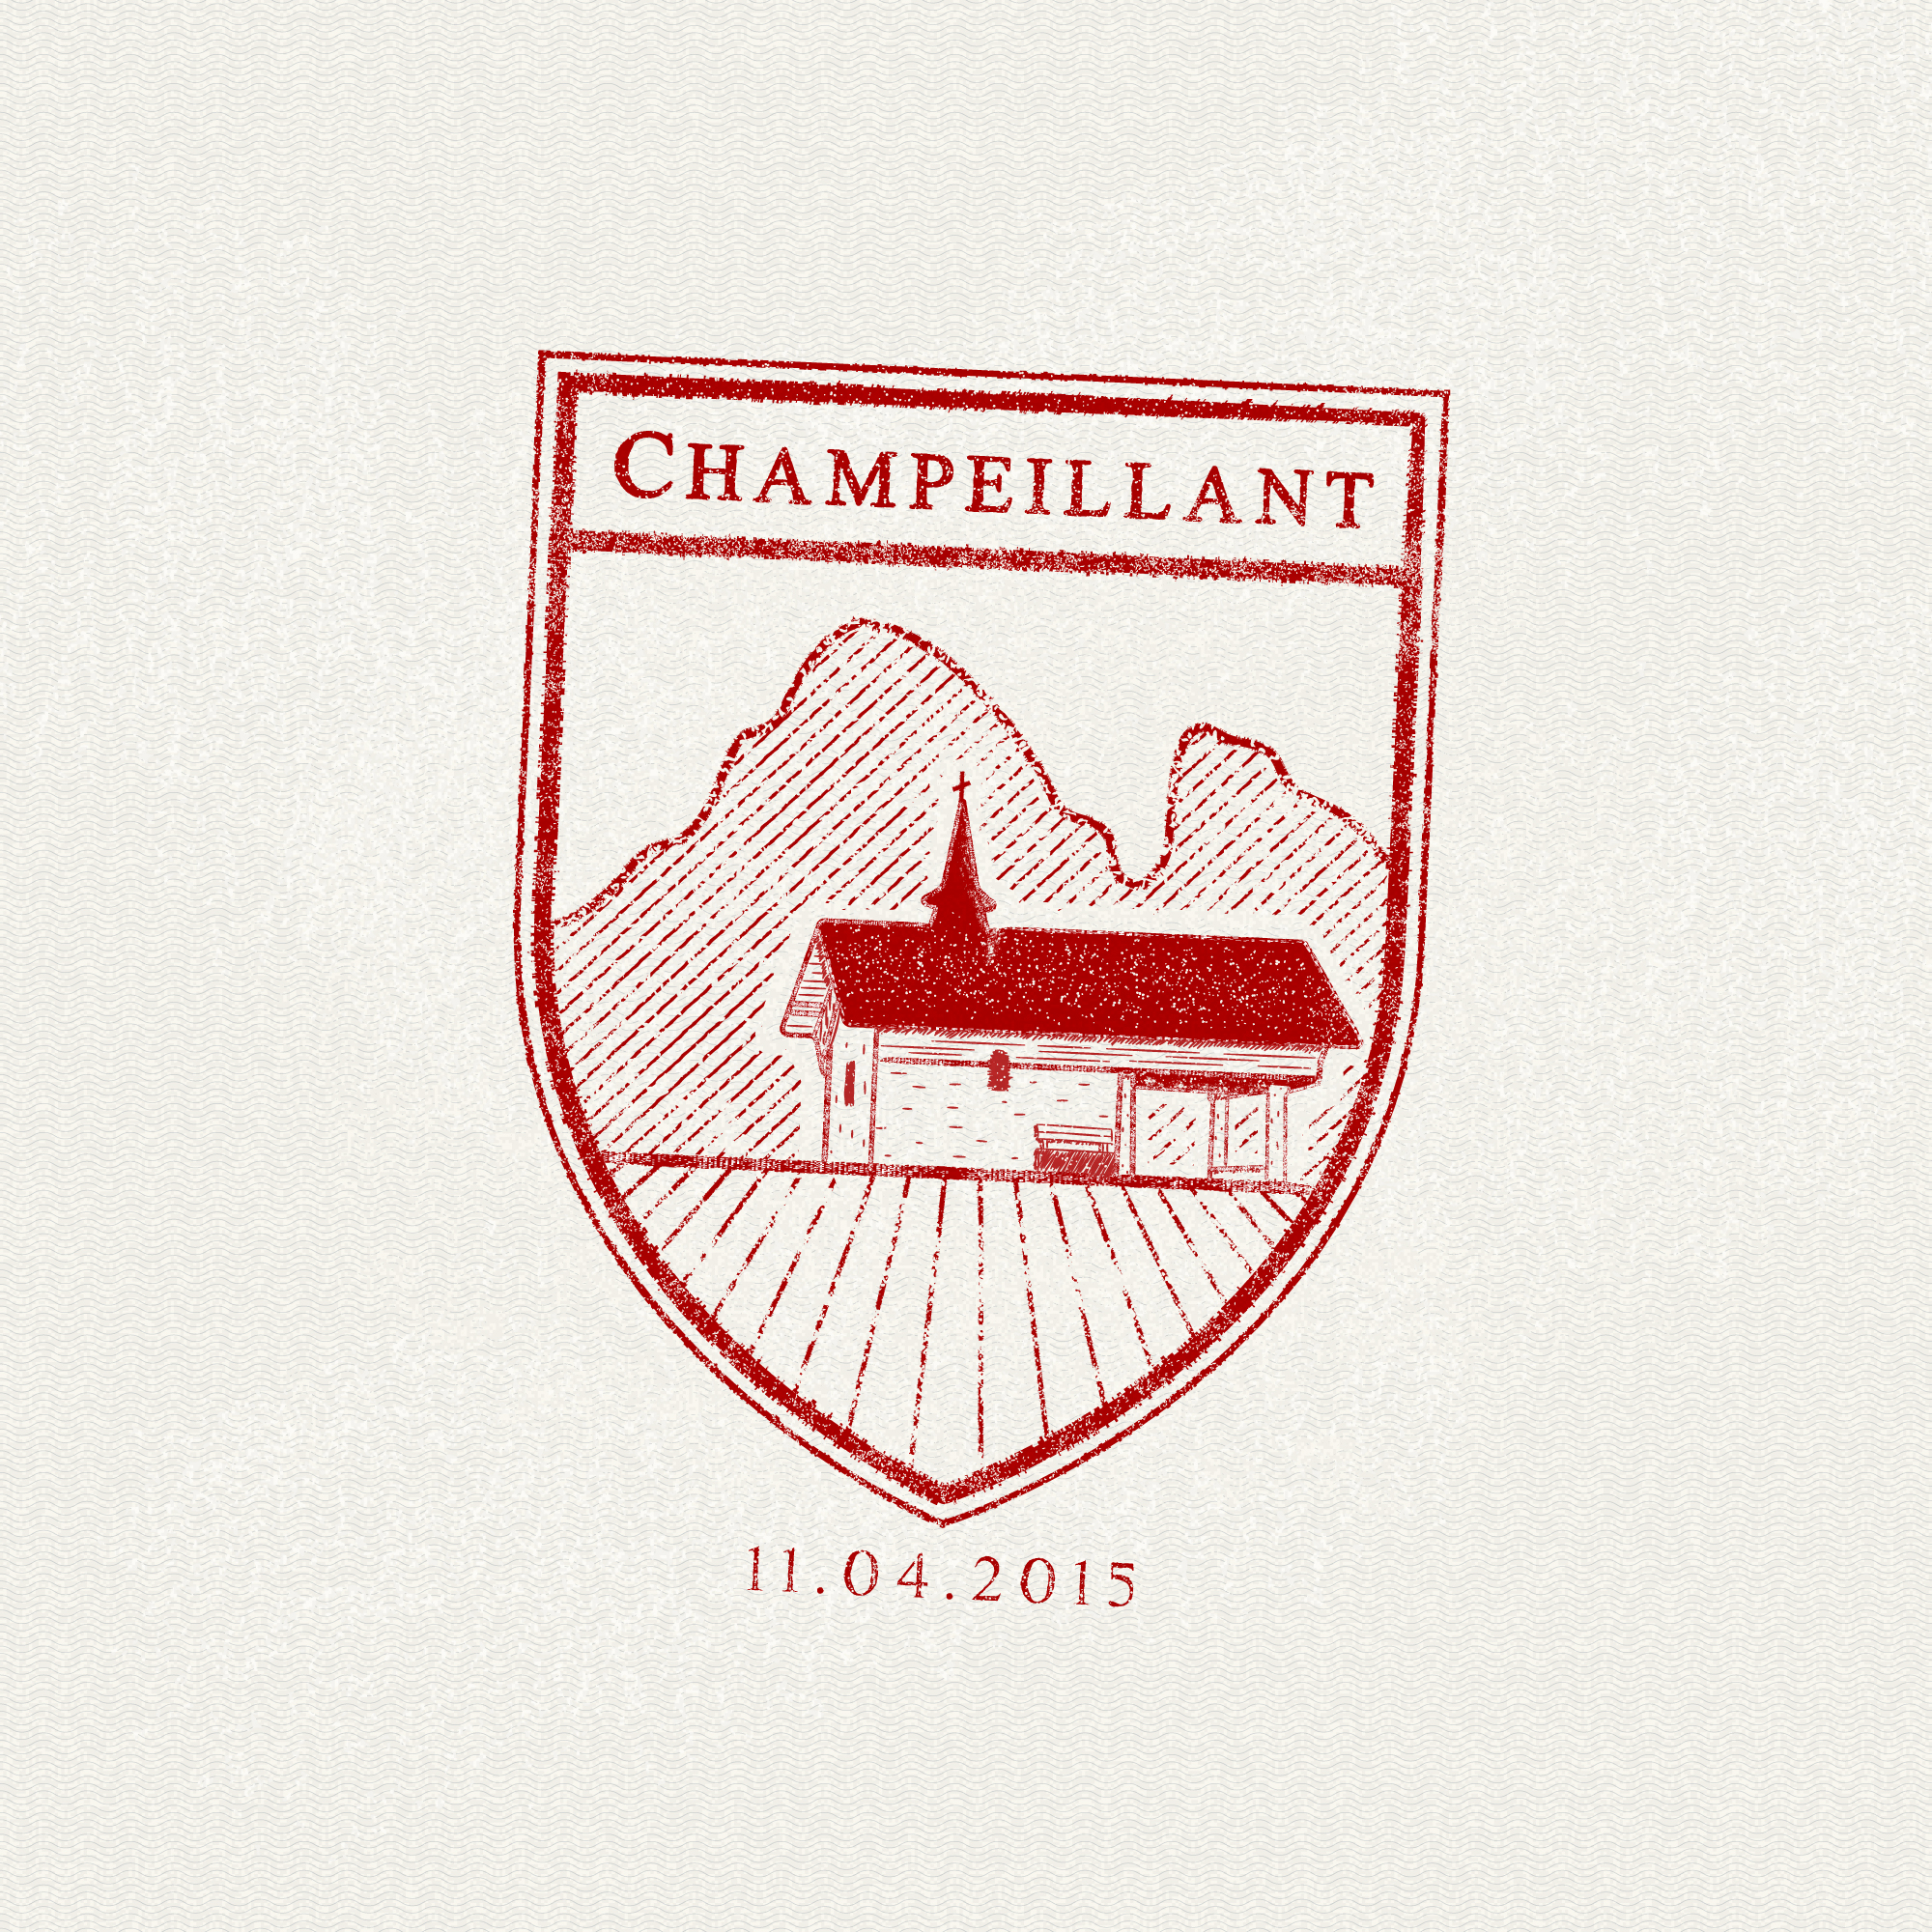 Champeillant, France passport stamp